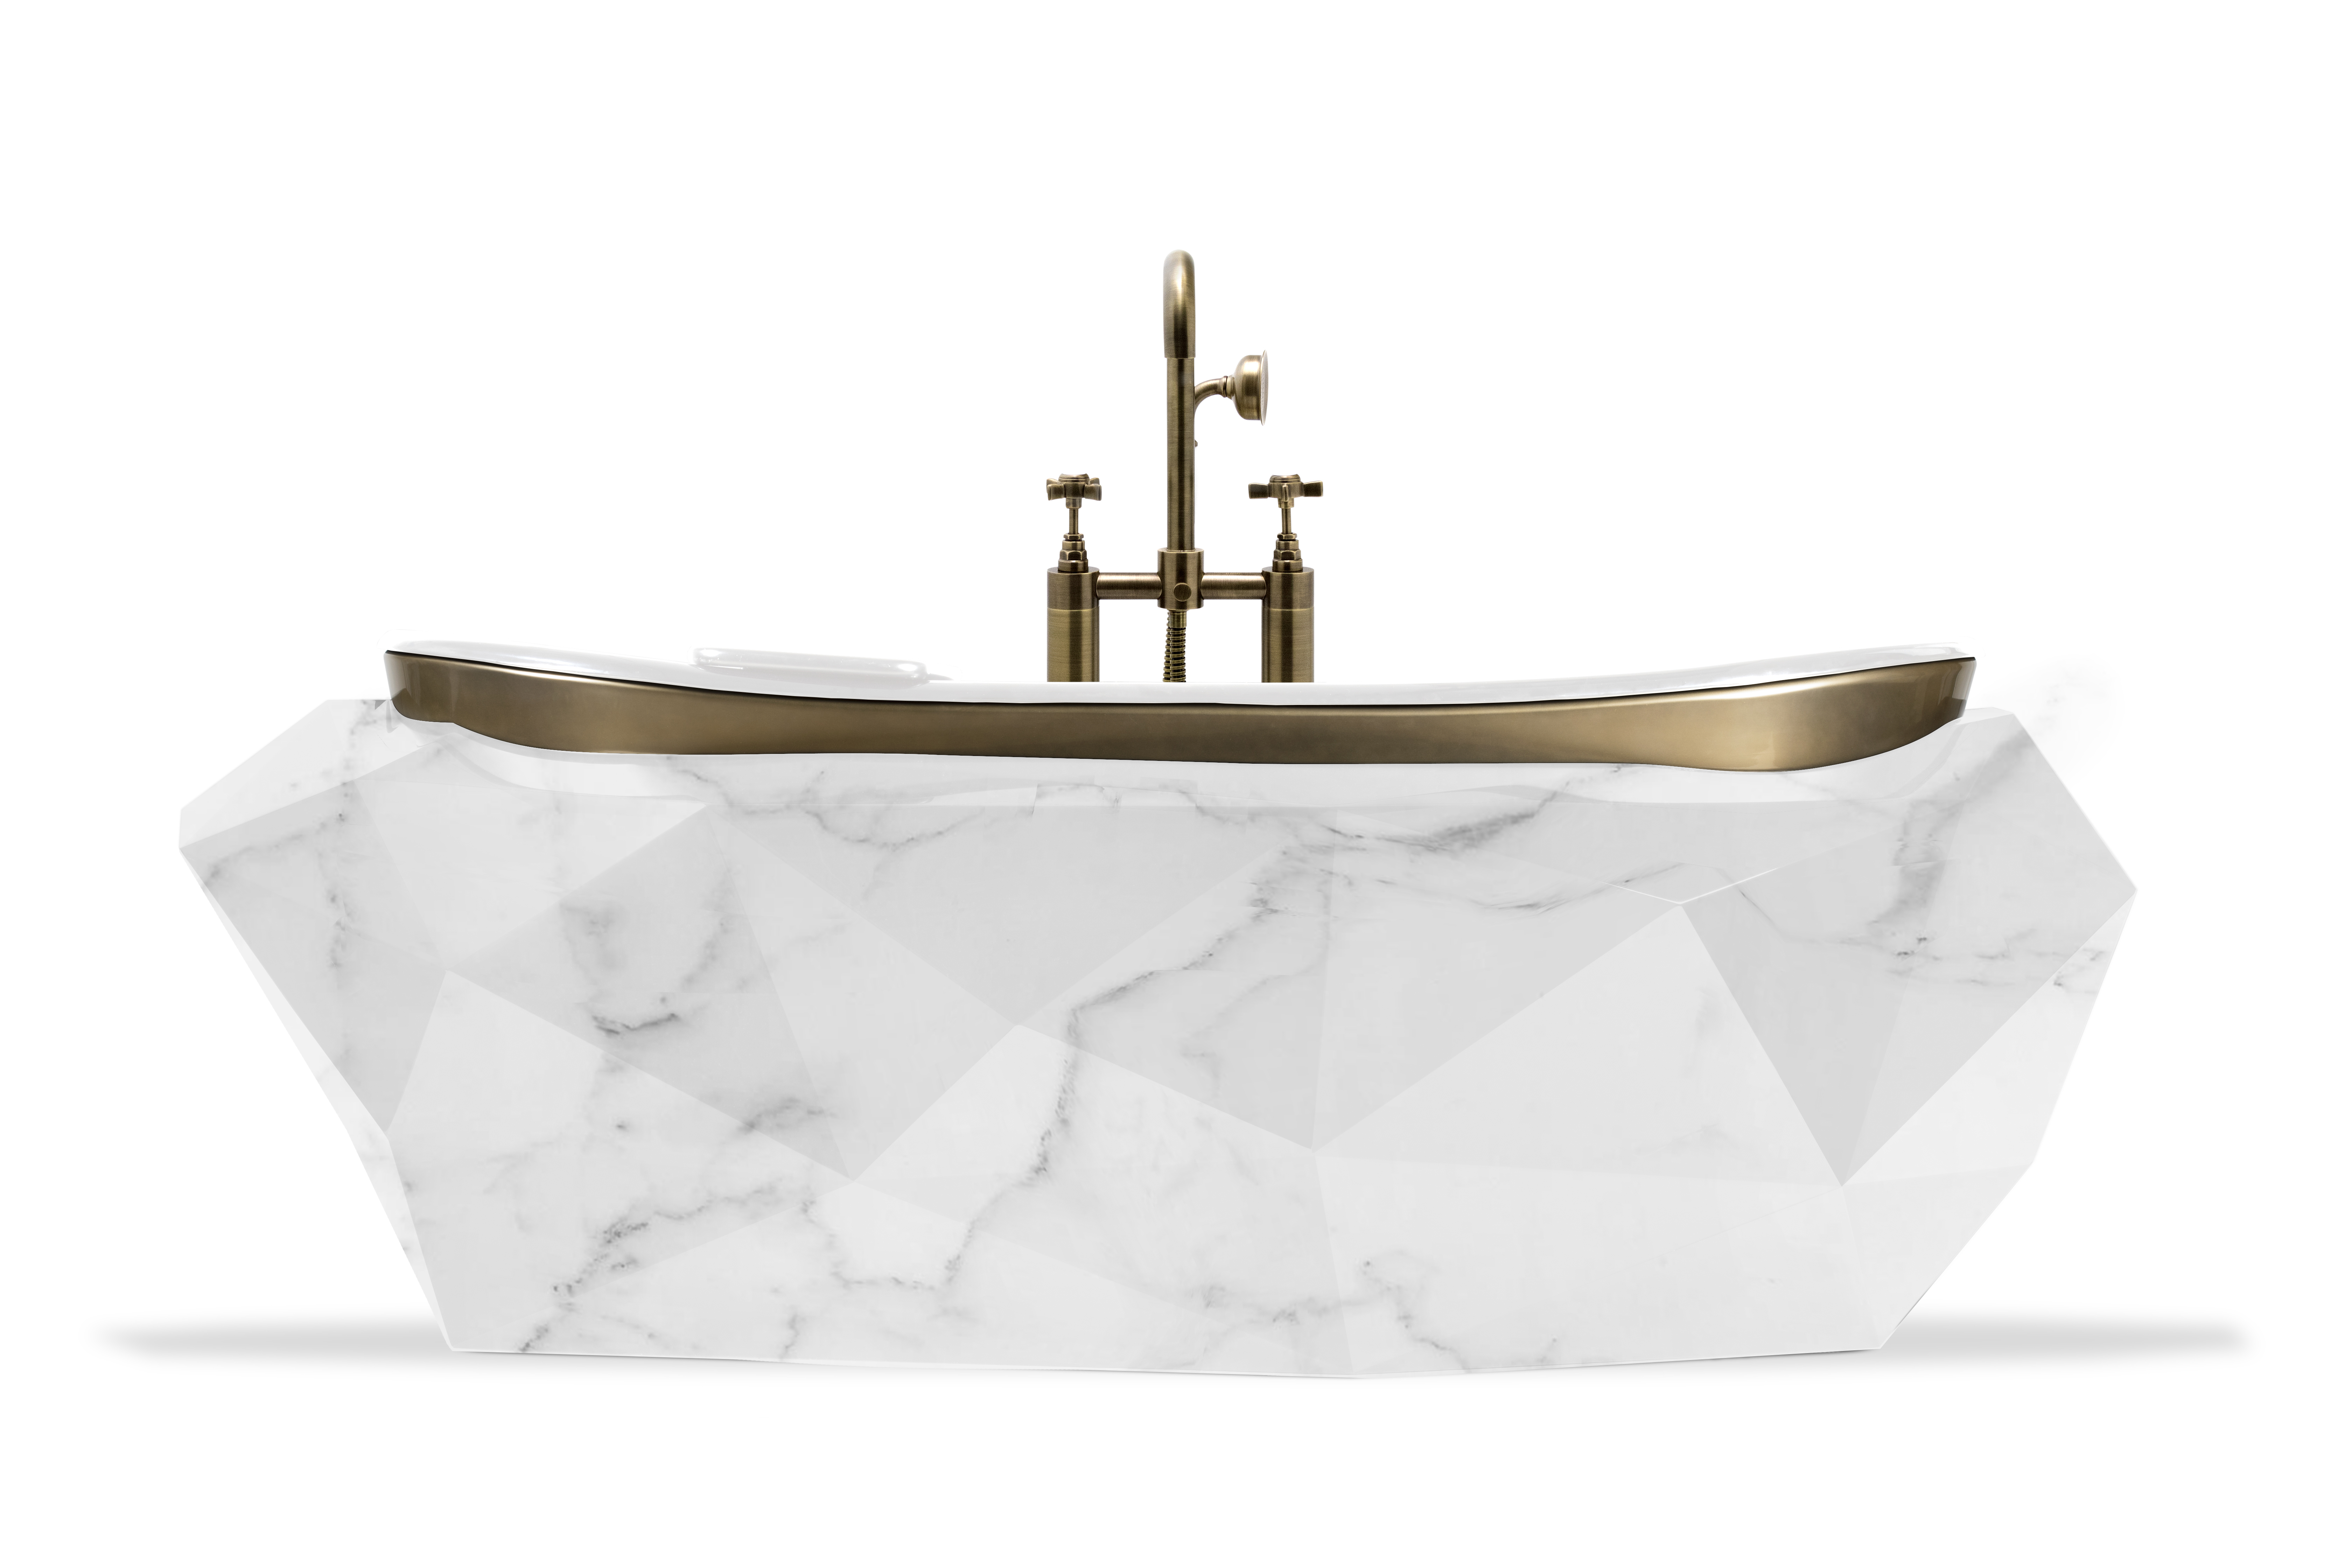 Luxe at home: Maison Valentina presents the latest Diamond Bathtubs Diamond Bathtubs Luxe at home: Maison Valentina presents the latest Diamond Bathtubs diamond faux marble bathtub 6 HR